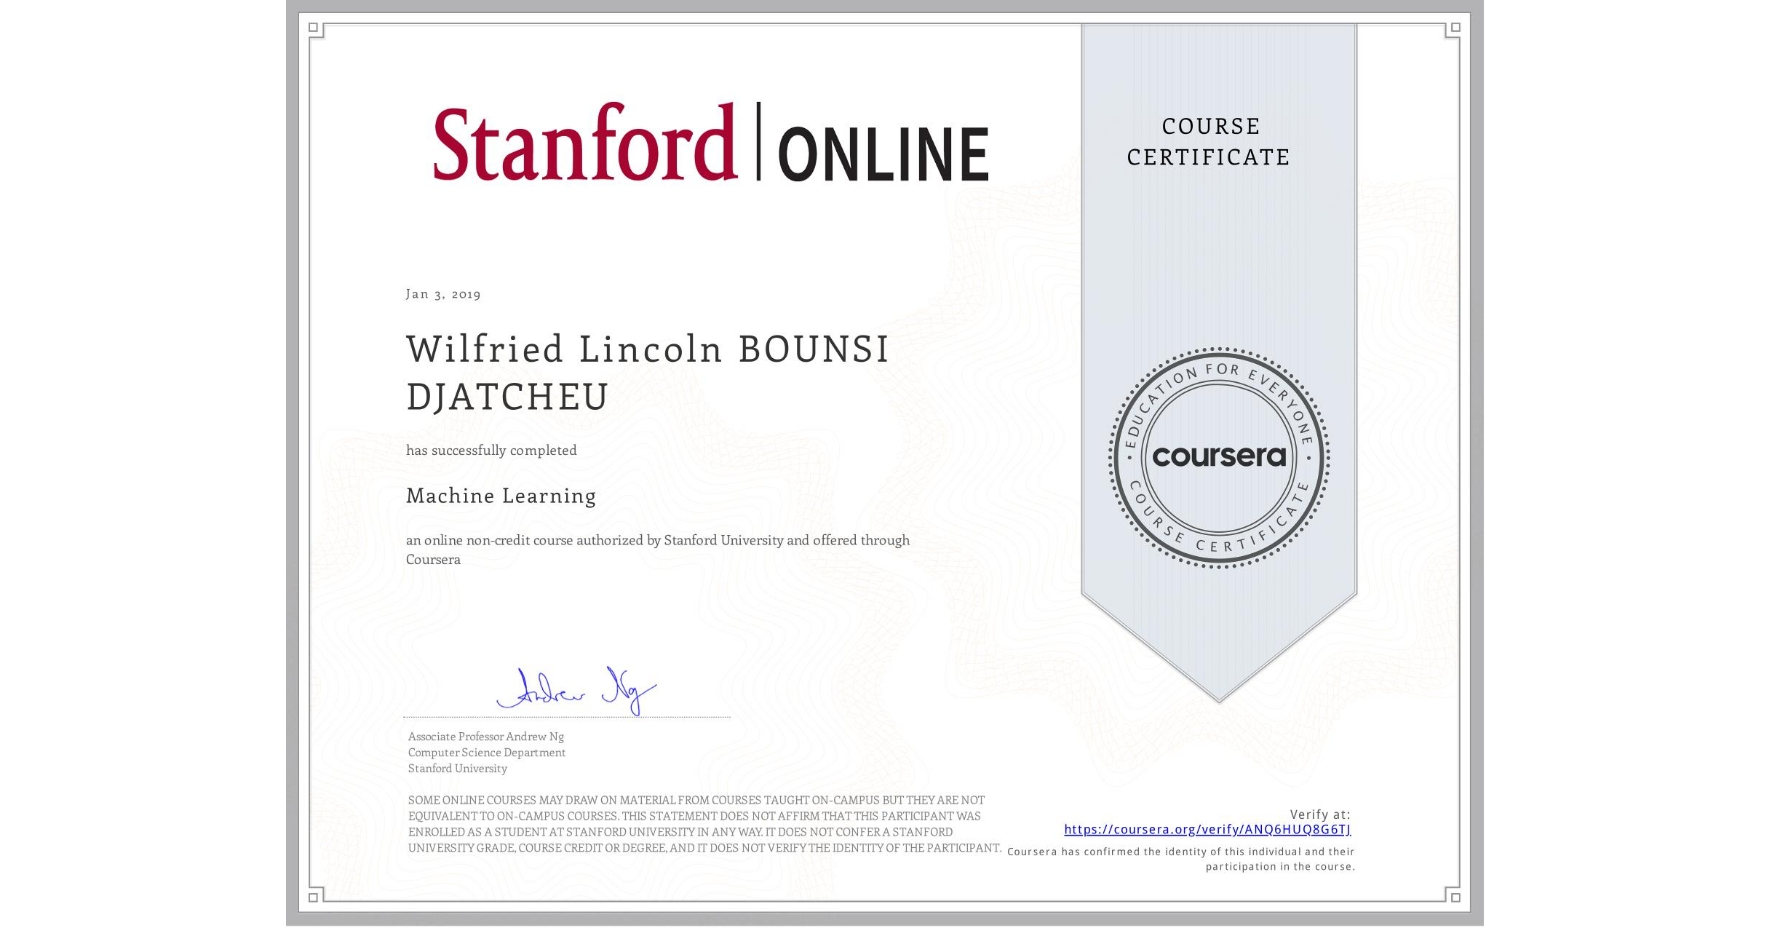 View certificate for Wilfried Lincoln BOUNSI DJATCHEU, Machine Learning, an online non-credit course authorized by Stanford University and offered through Coursera